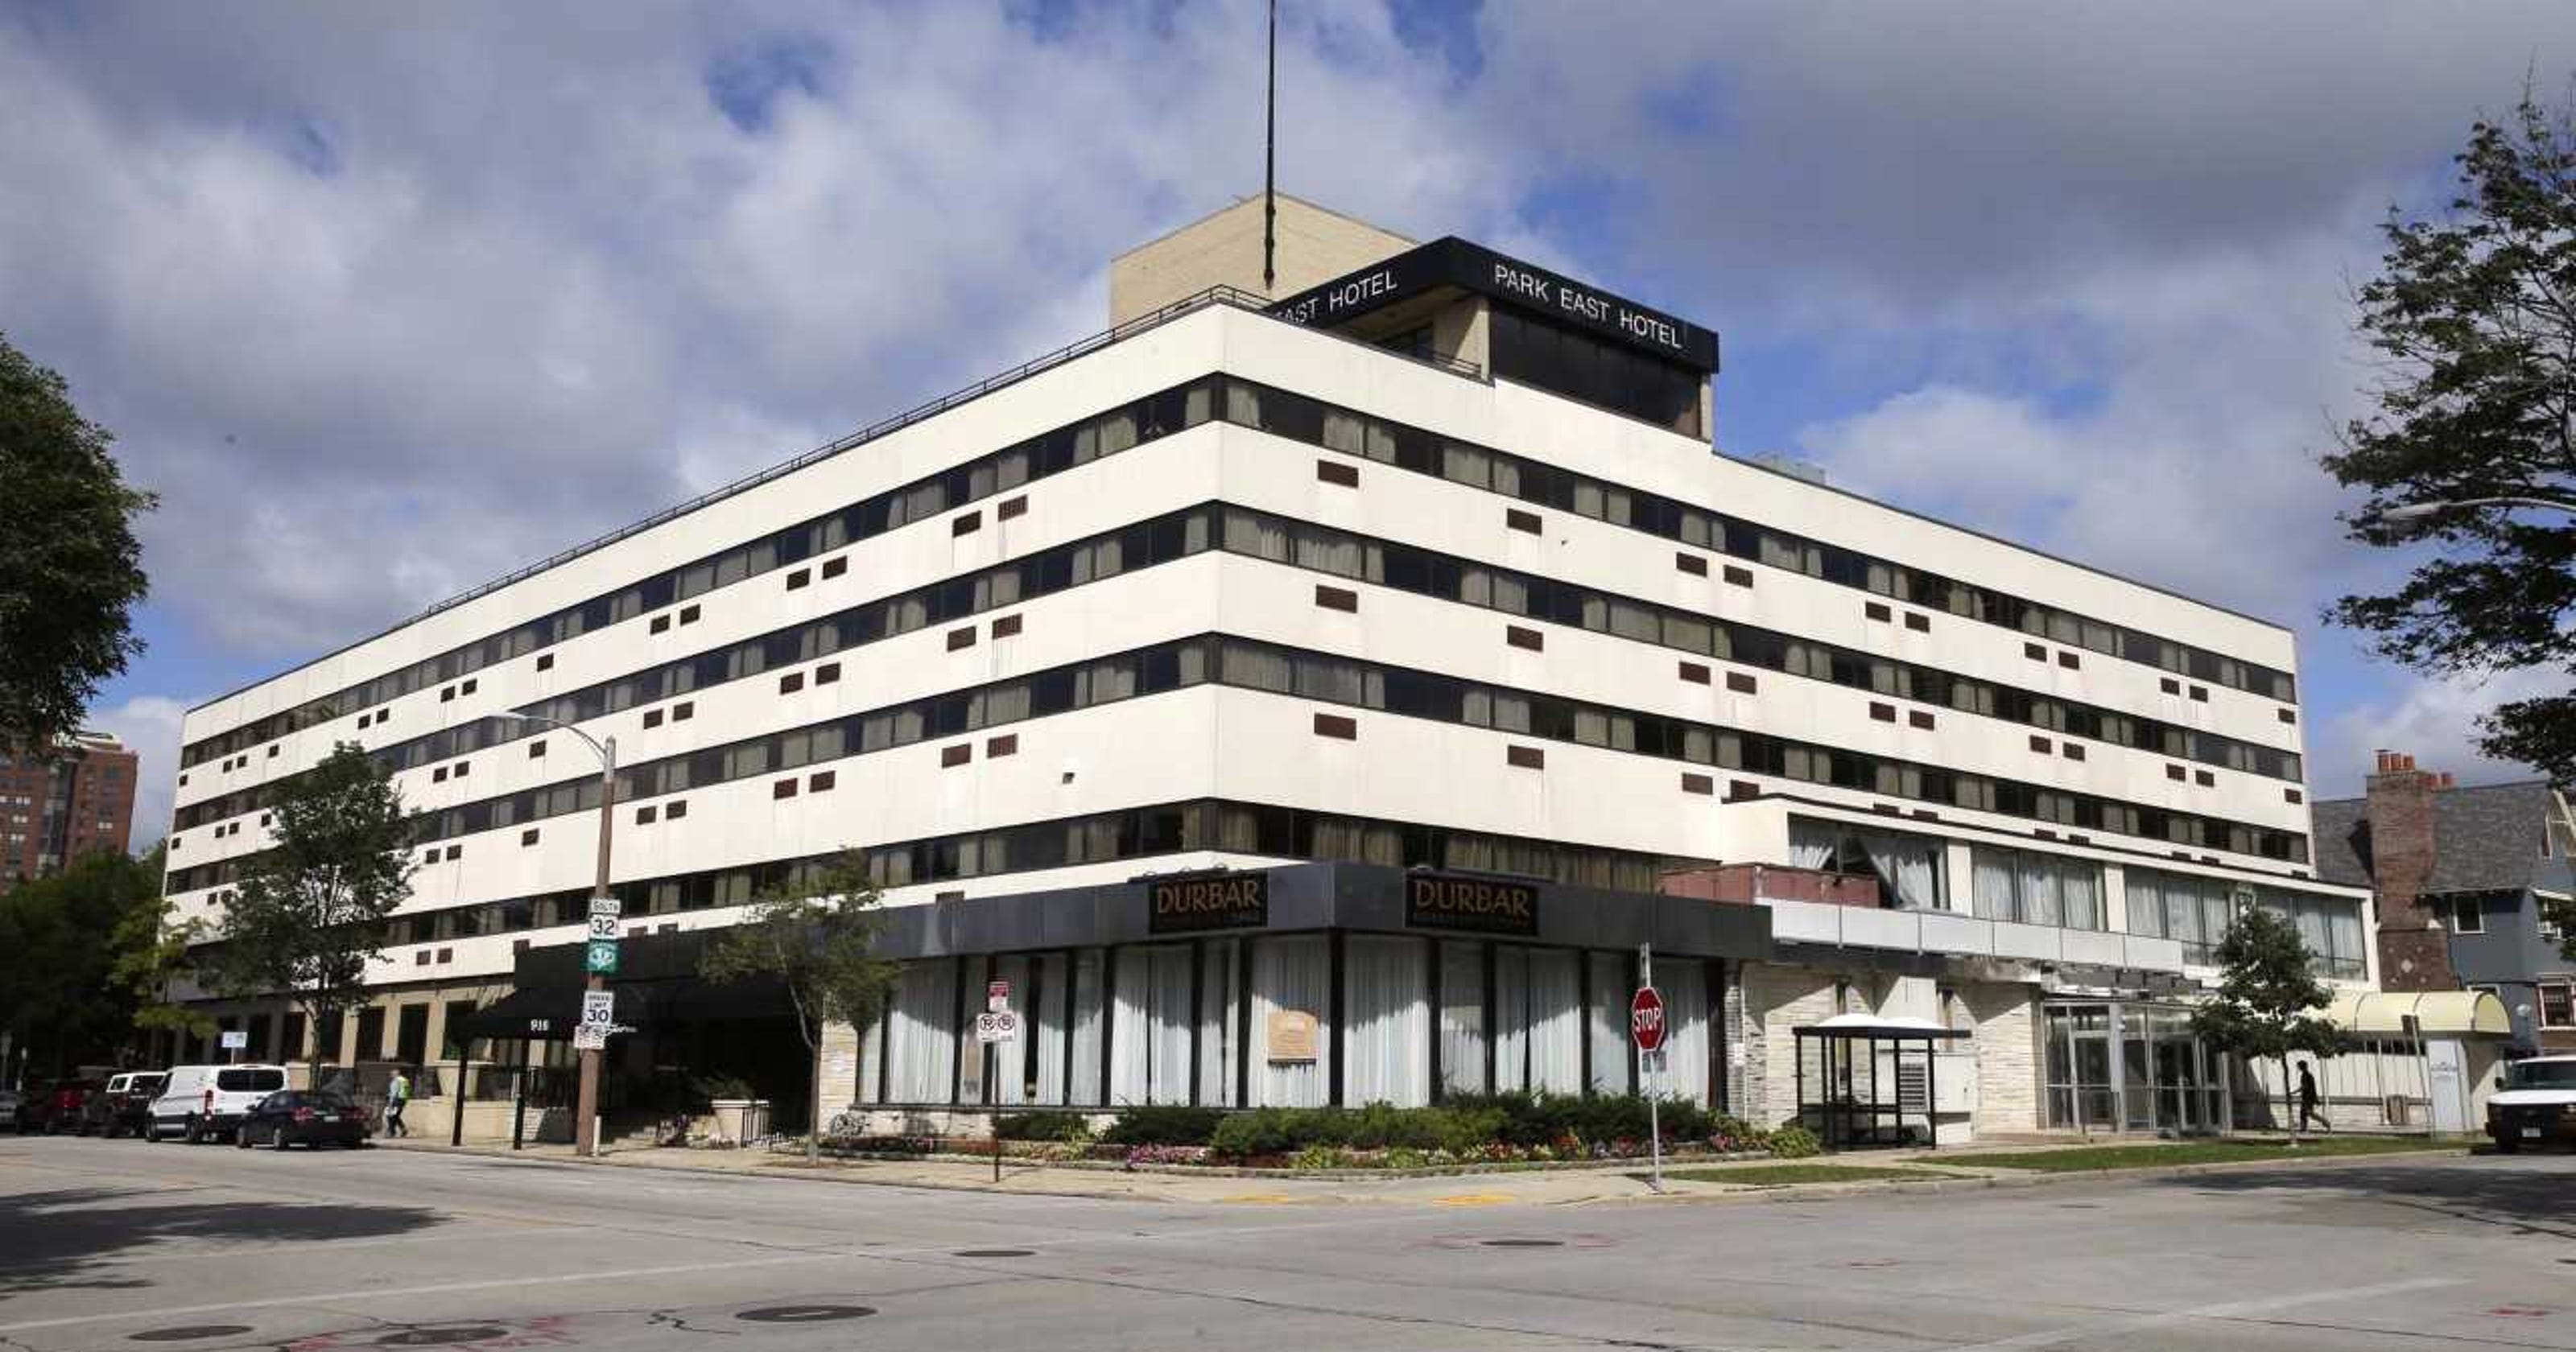 Downtown Milwaukee S Park East Hotel To Be Closed Redeveloped As 96 Apartments